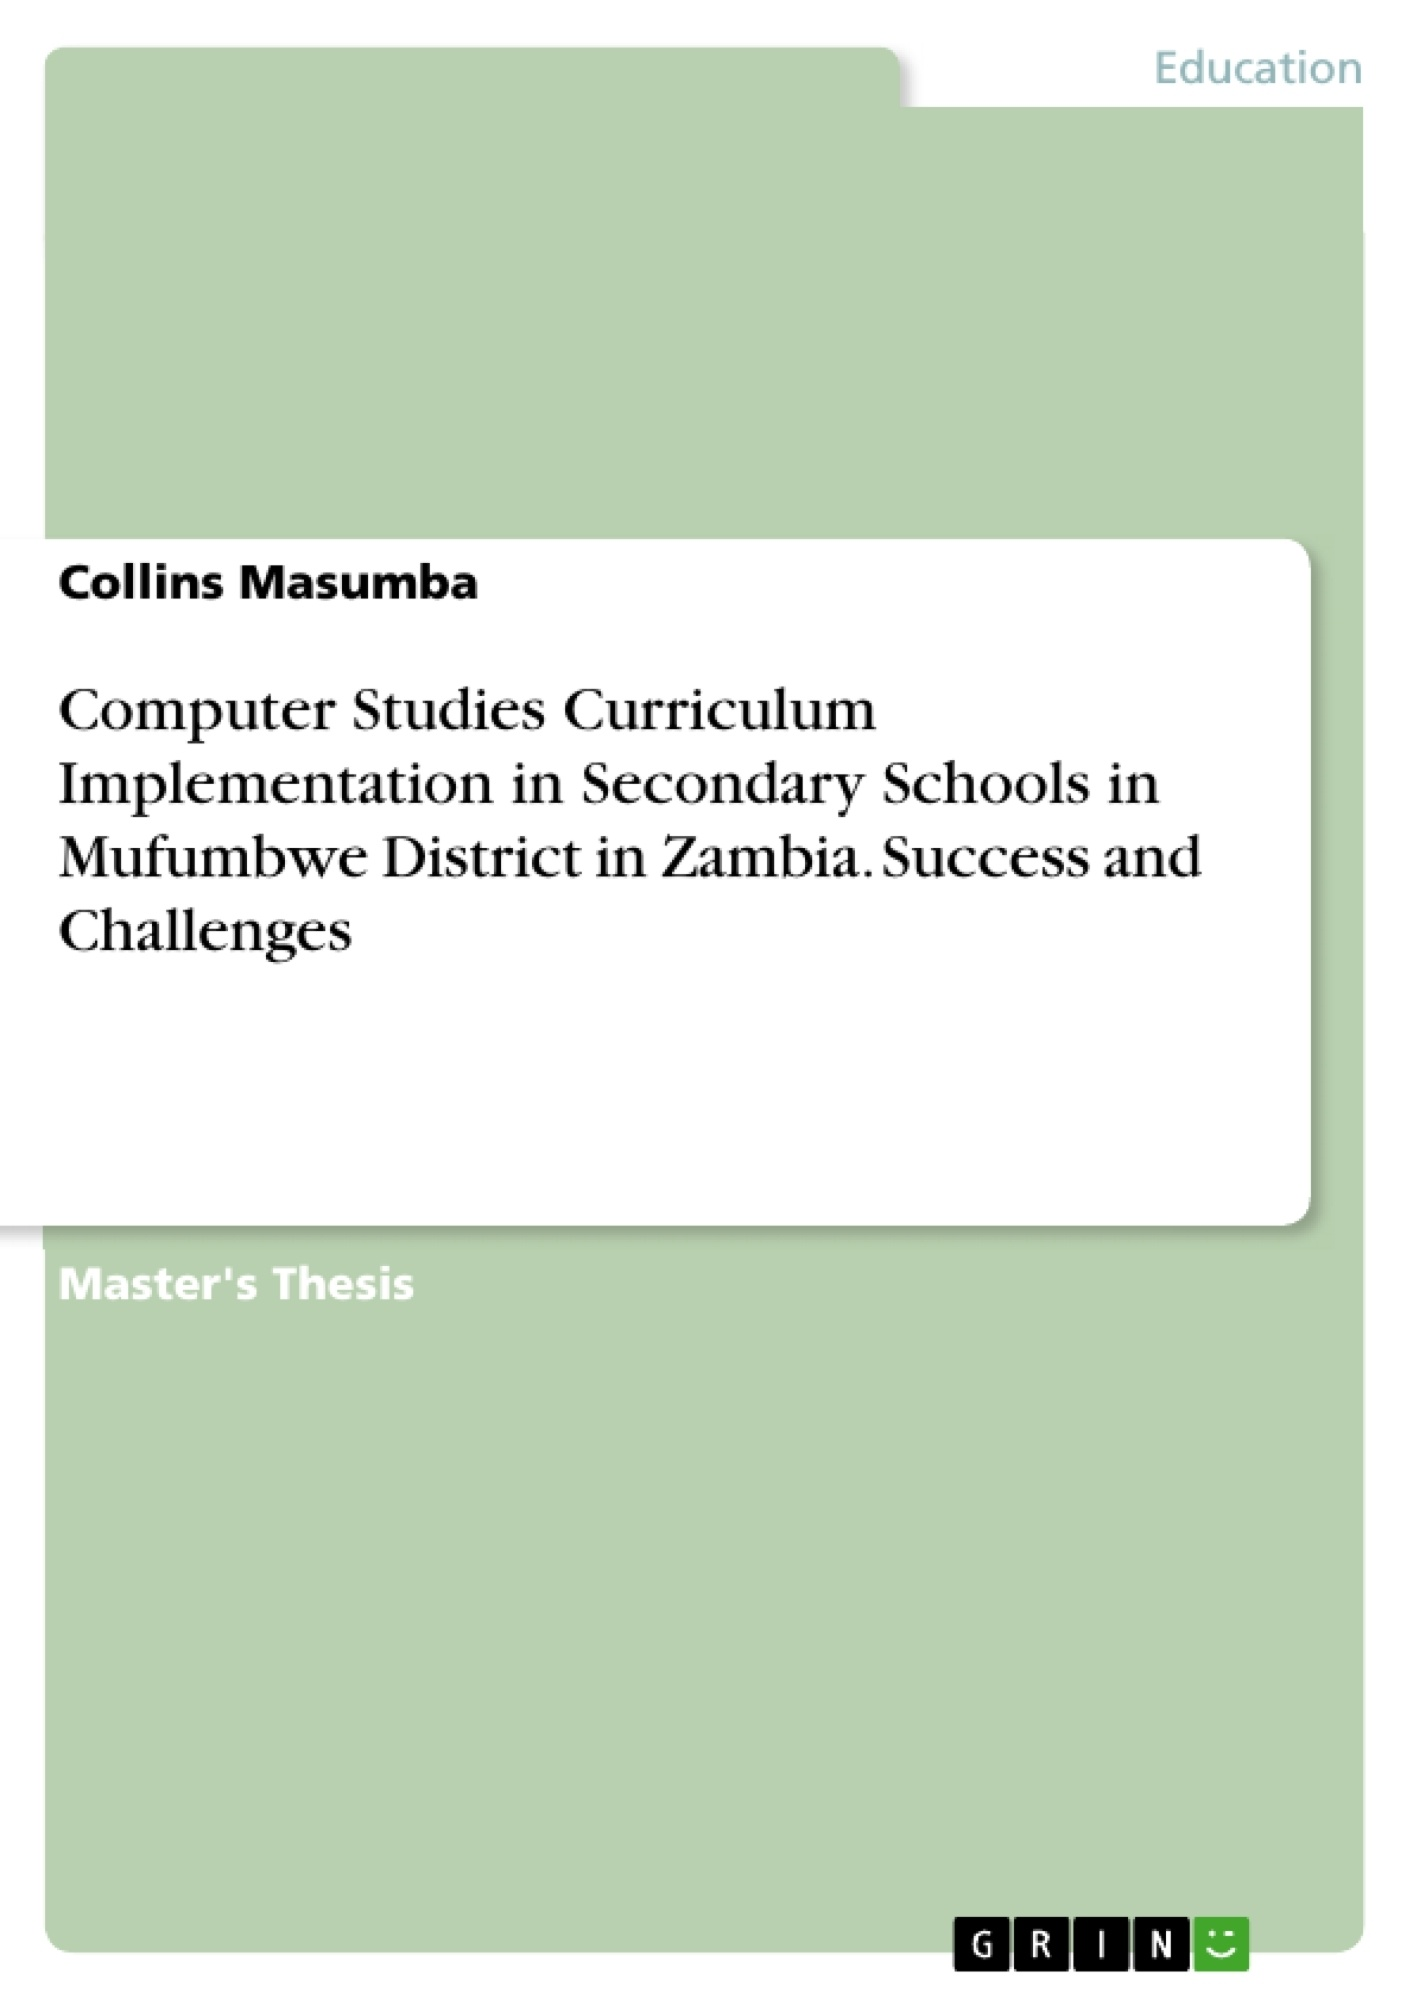 Title: Computer Studies Curriculum Implementation in Secondary Schools in Mufumbwe District in Zambia. Success and Challenges